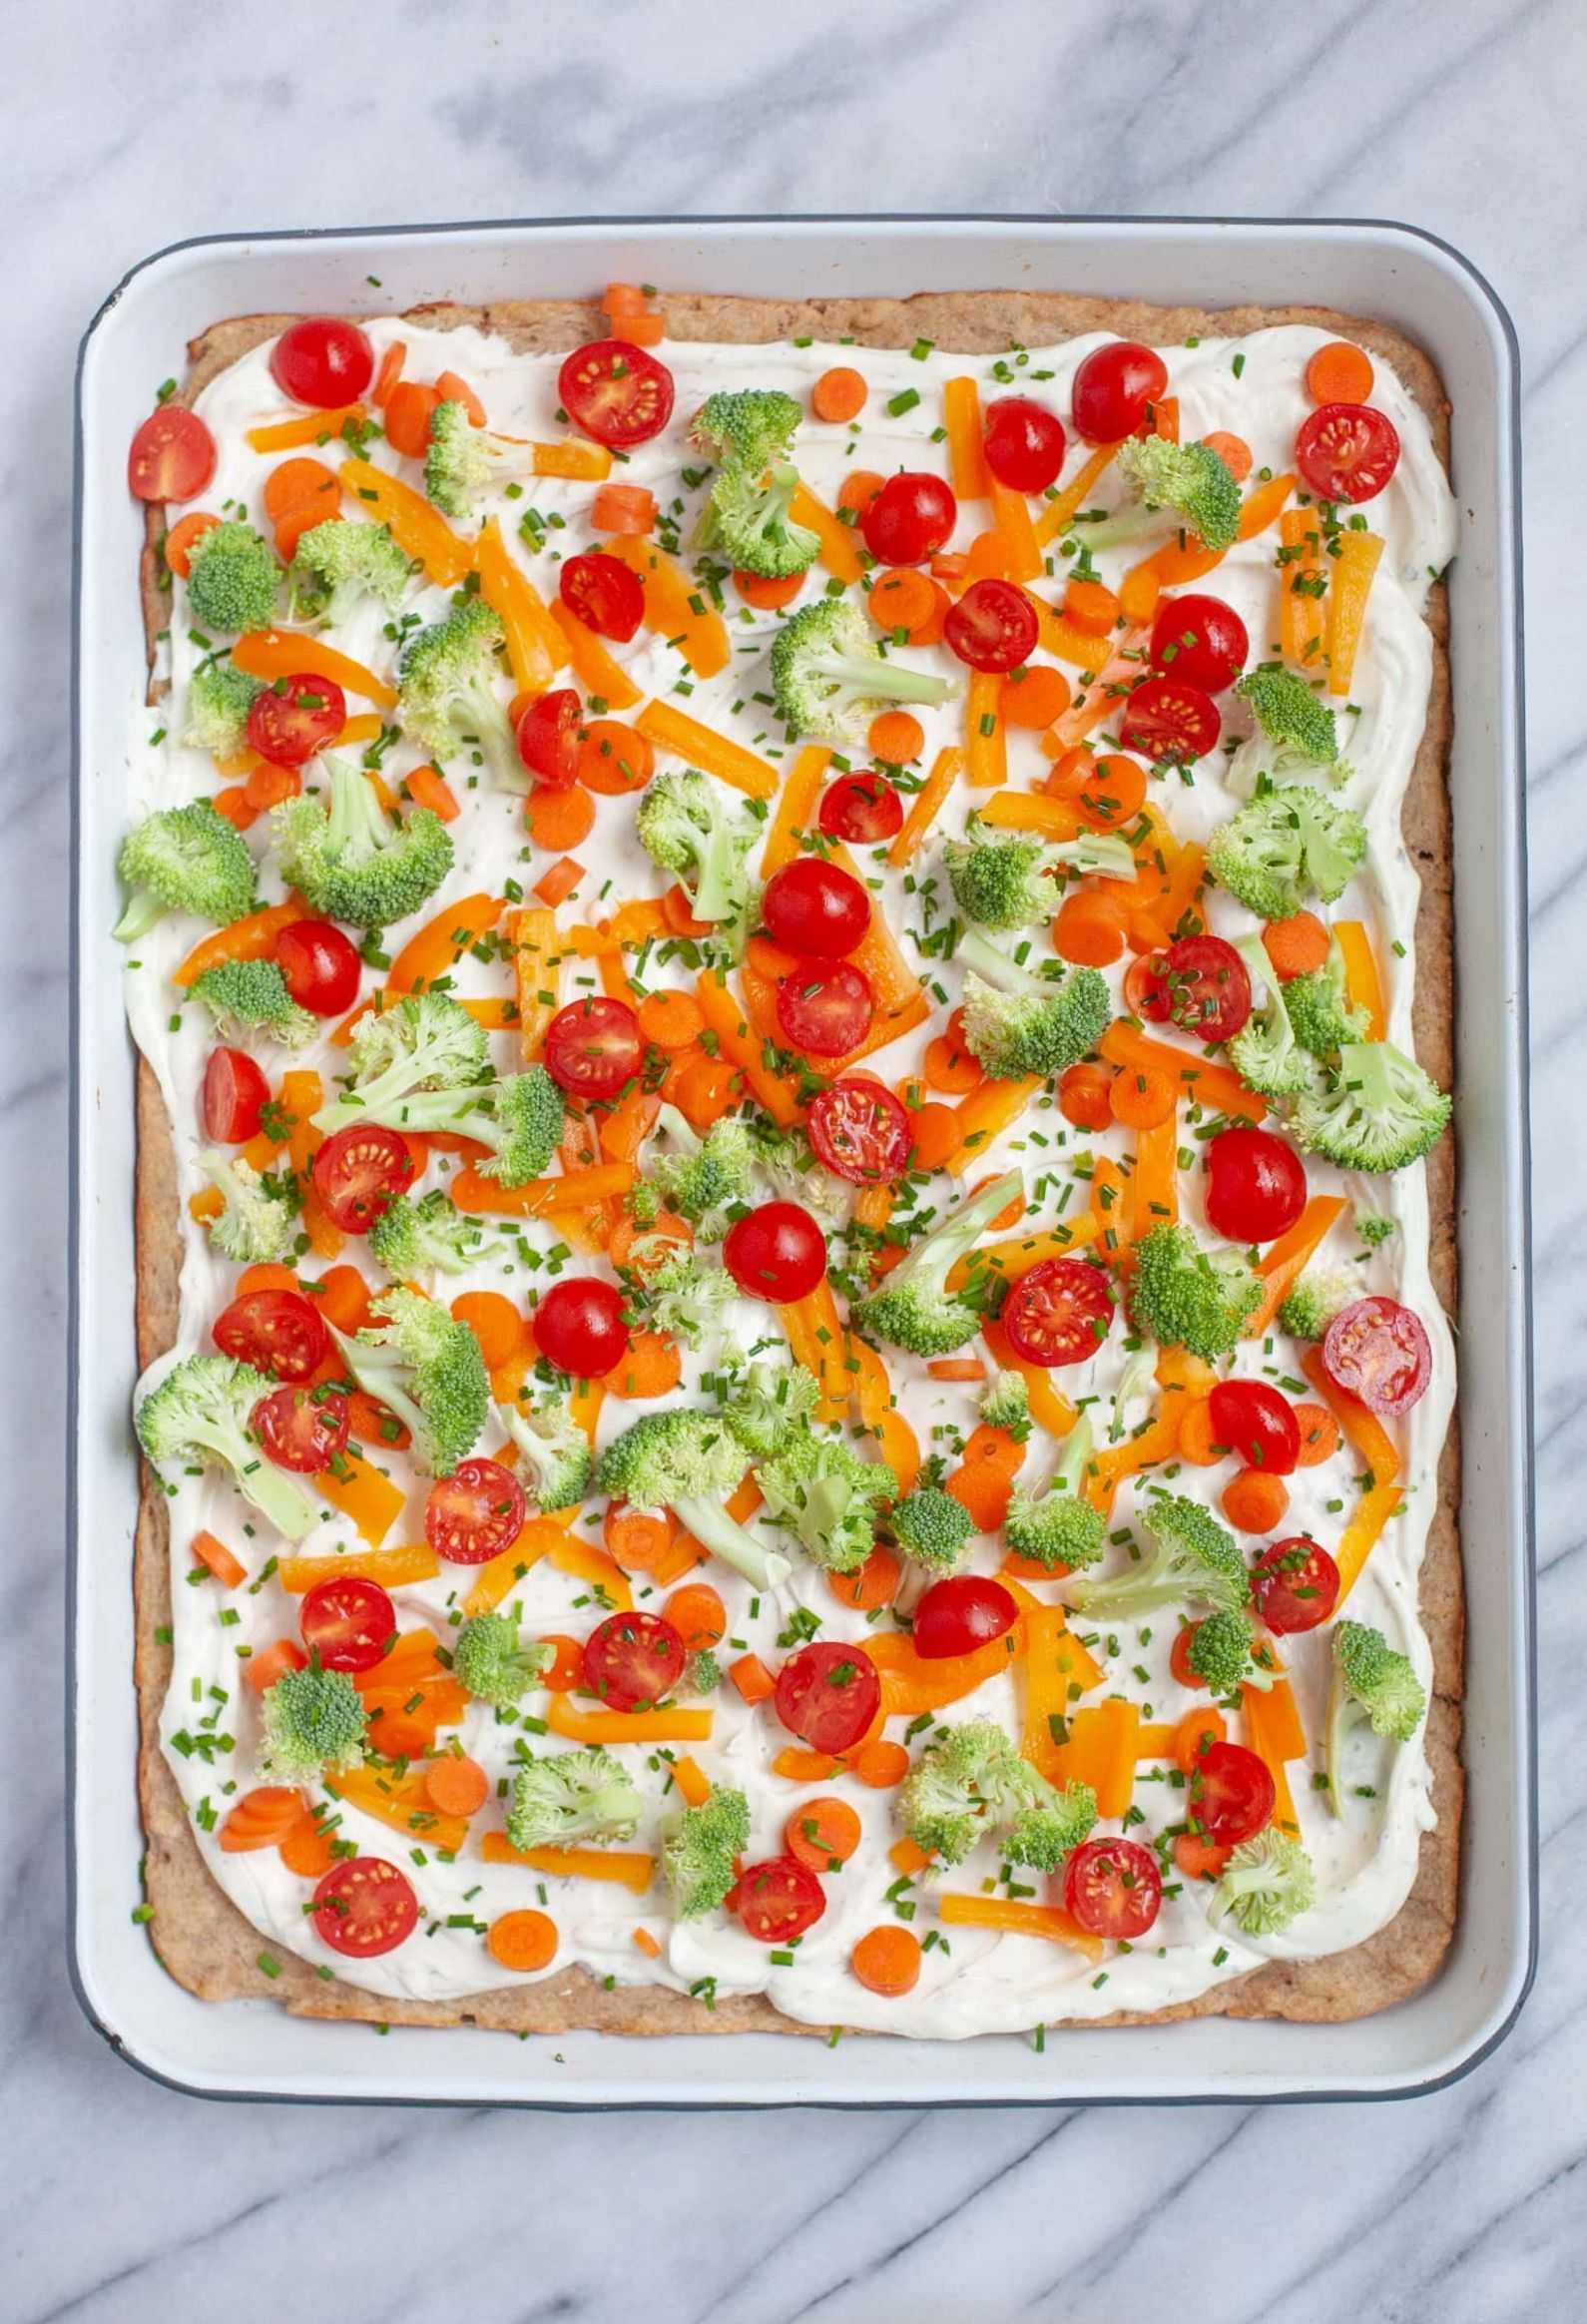 Cold Veggie Pizza Appetizers | Wholefully - Pizza Recipes Appetizers